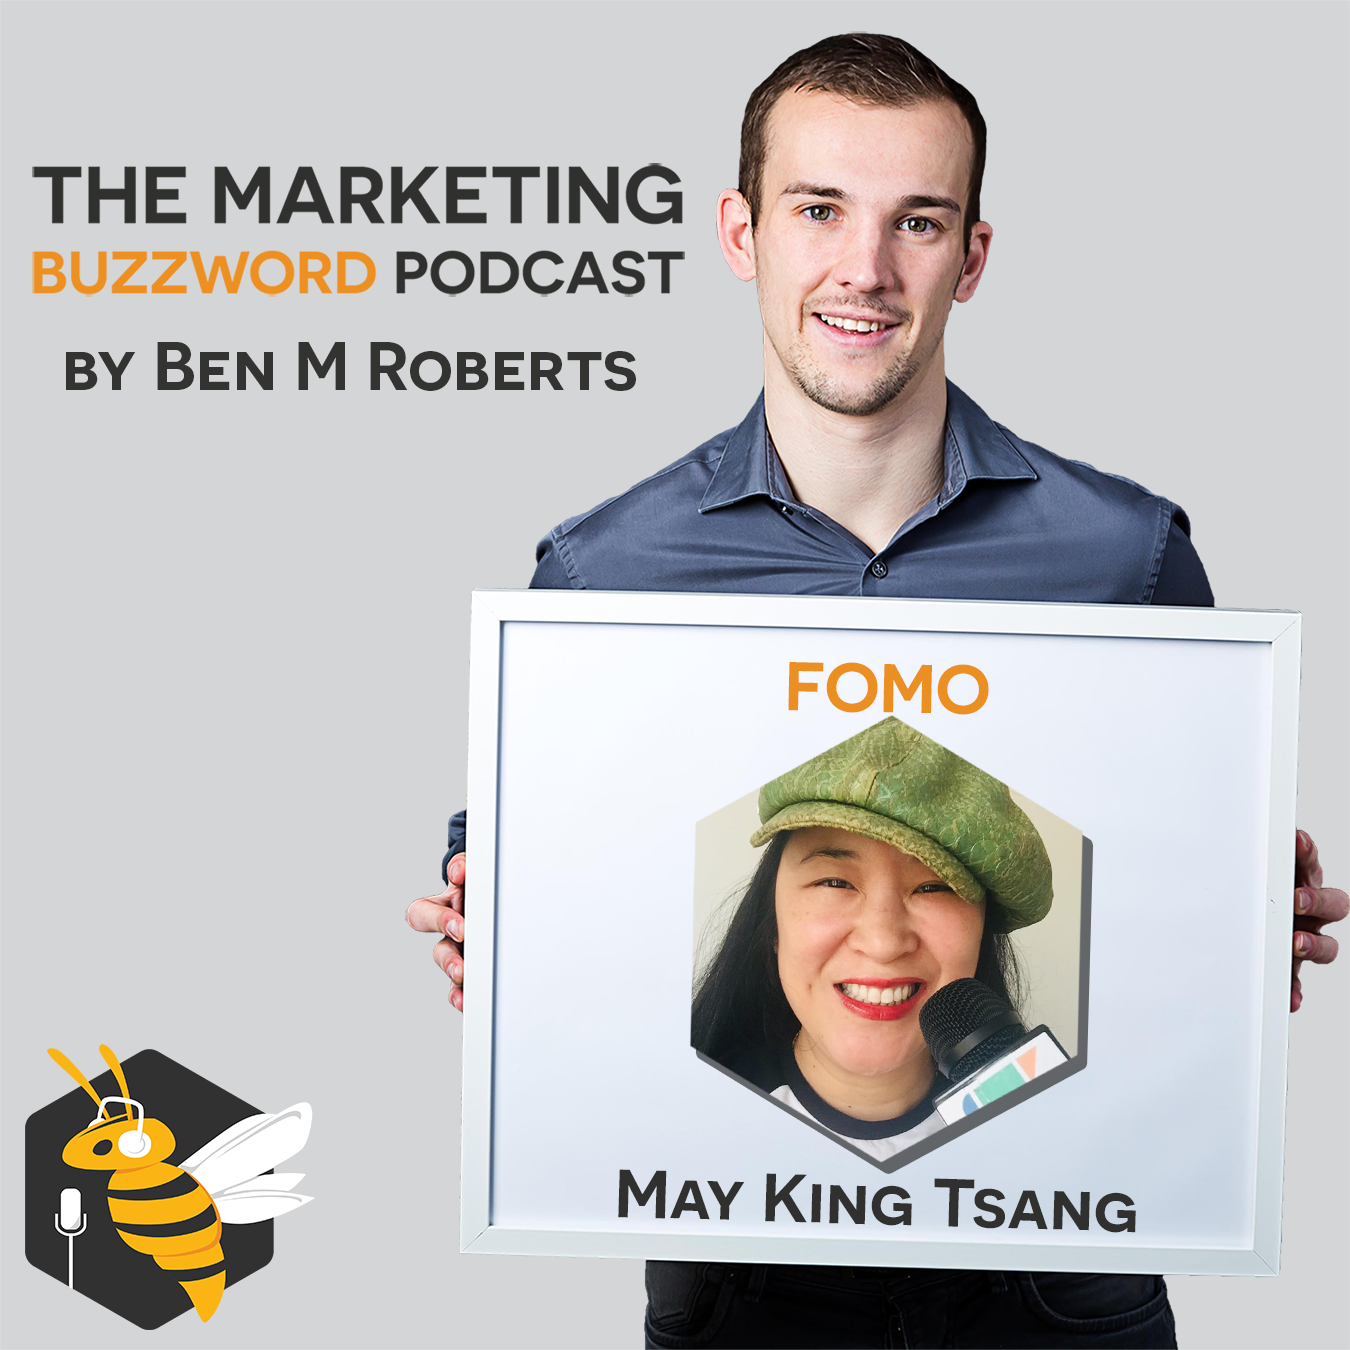 FOMO - What is FOMO? How can businesses leverage the fear of missing out? How can you create FOMO?